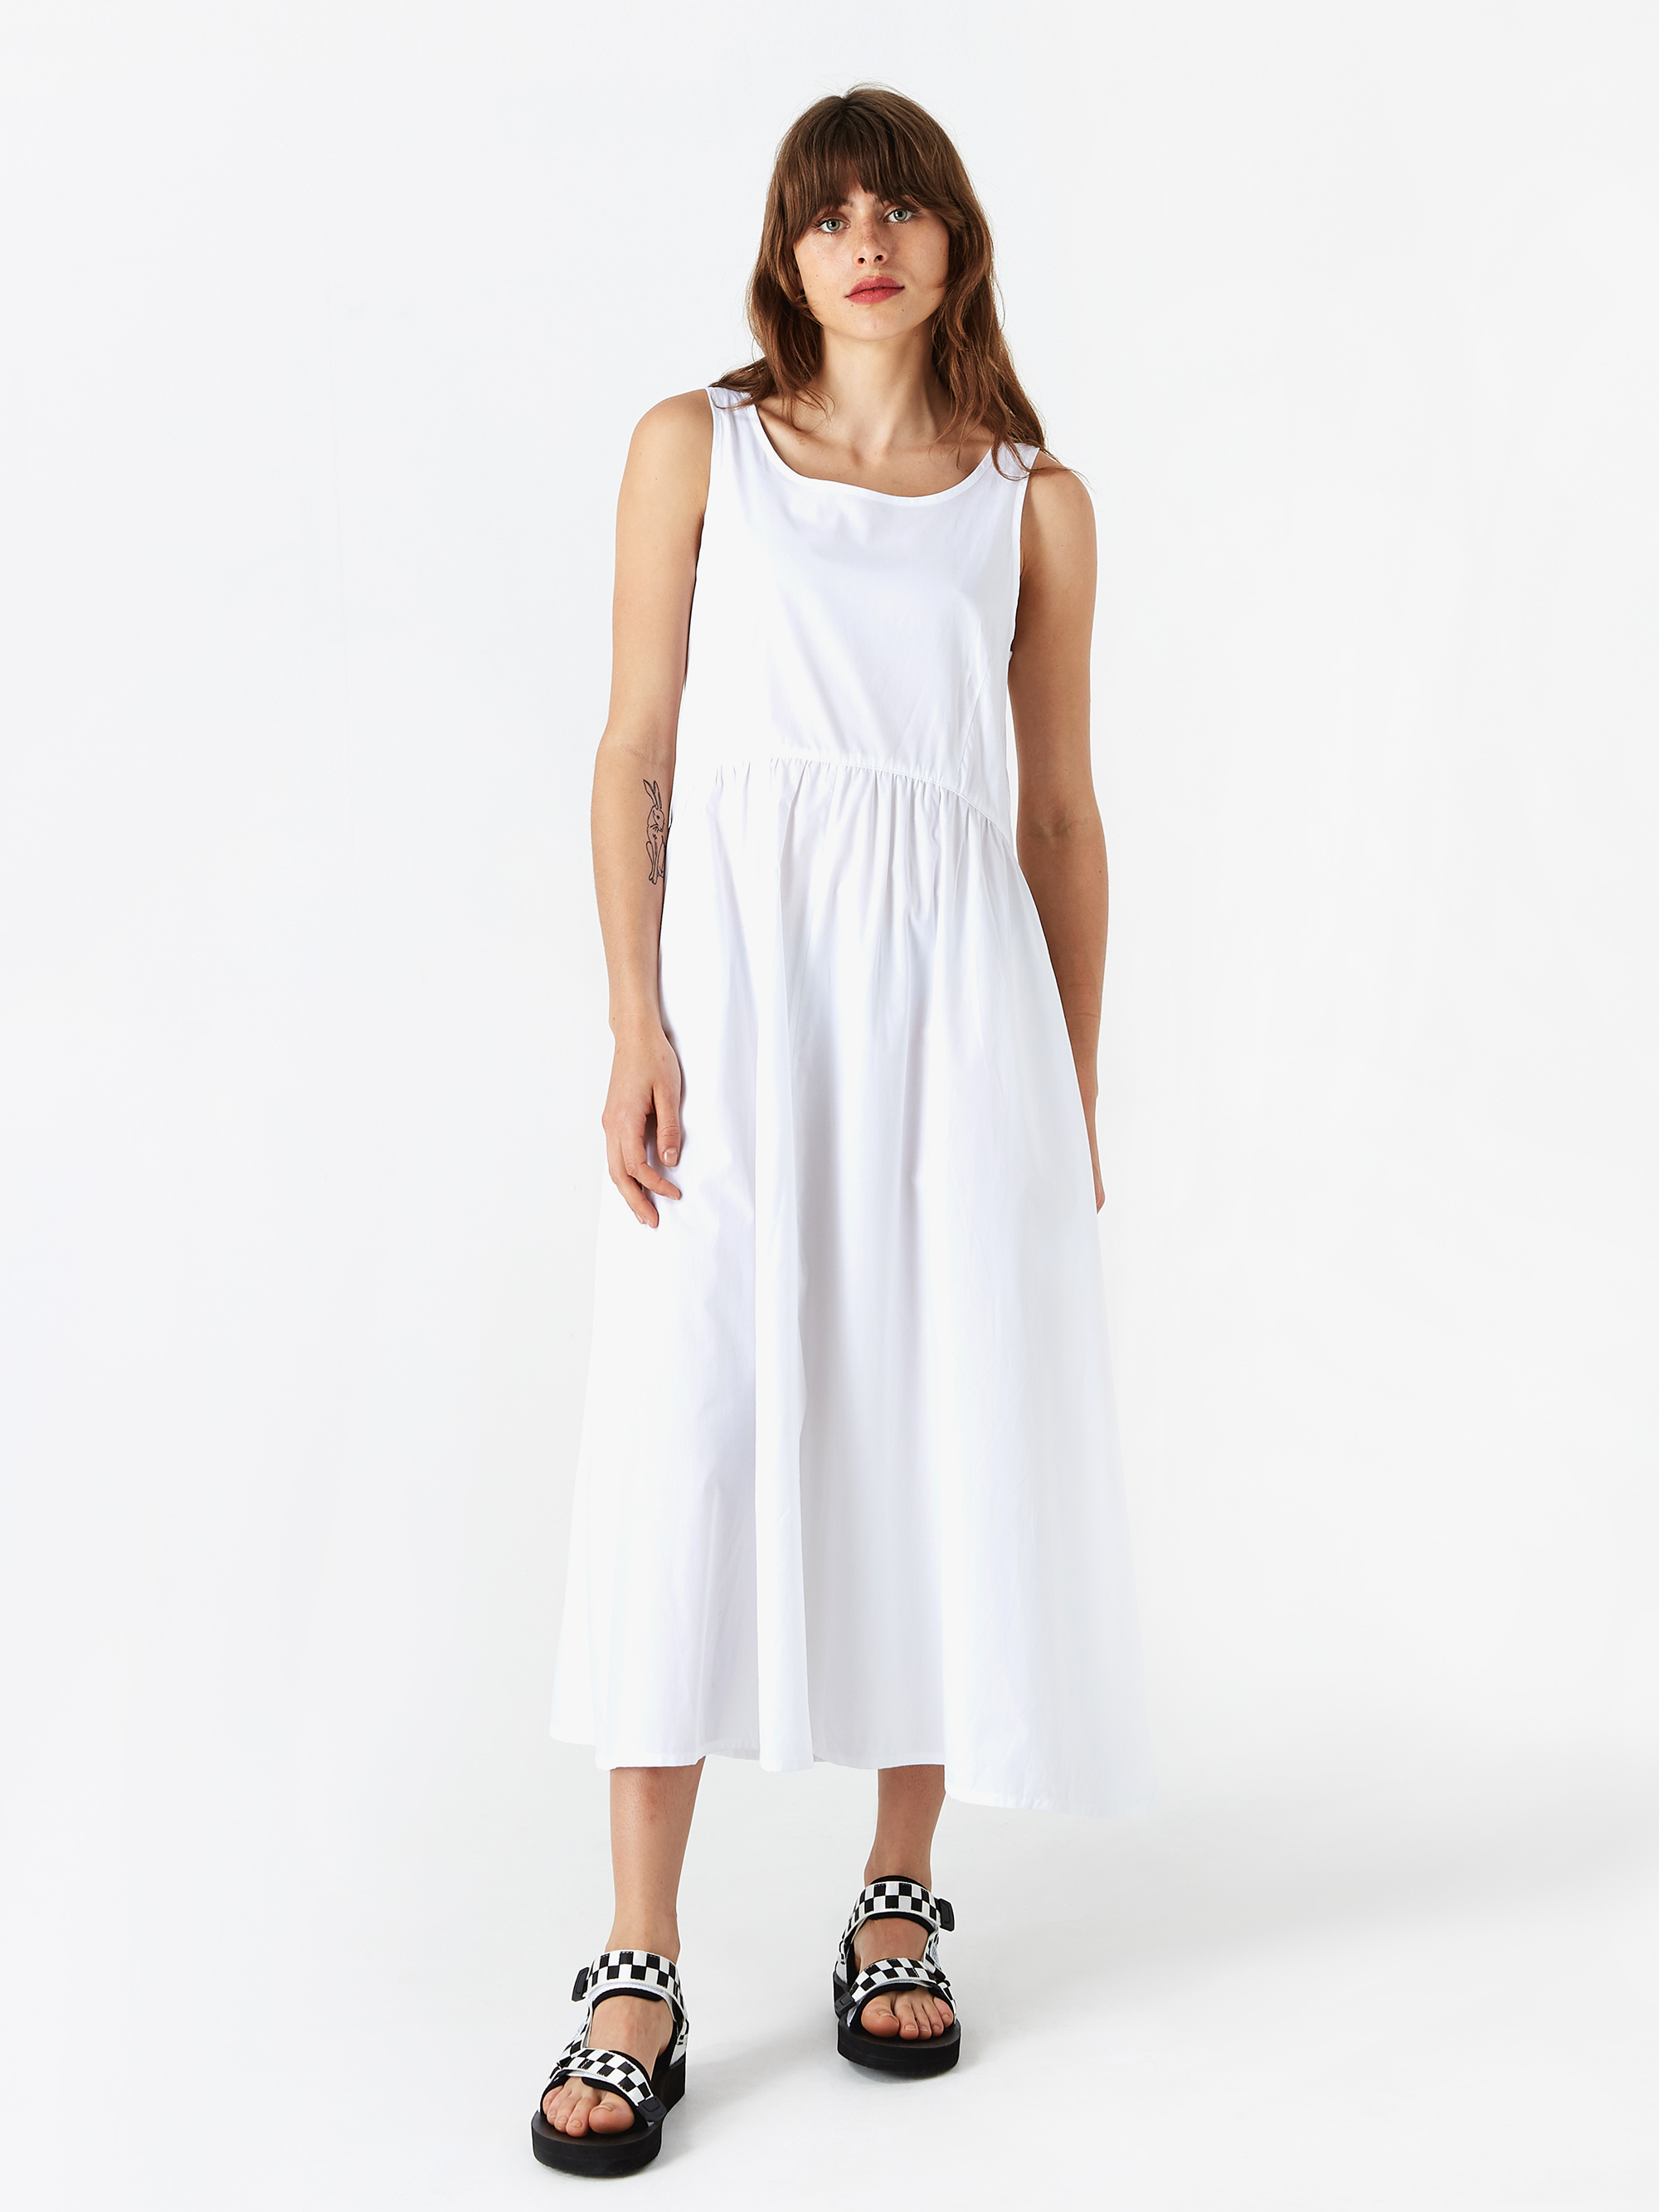 c9fde1d19 Casual Long White Summer Dresses